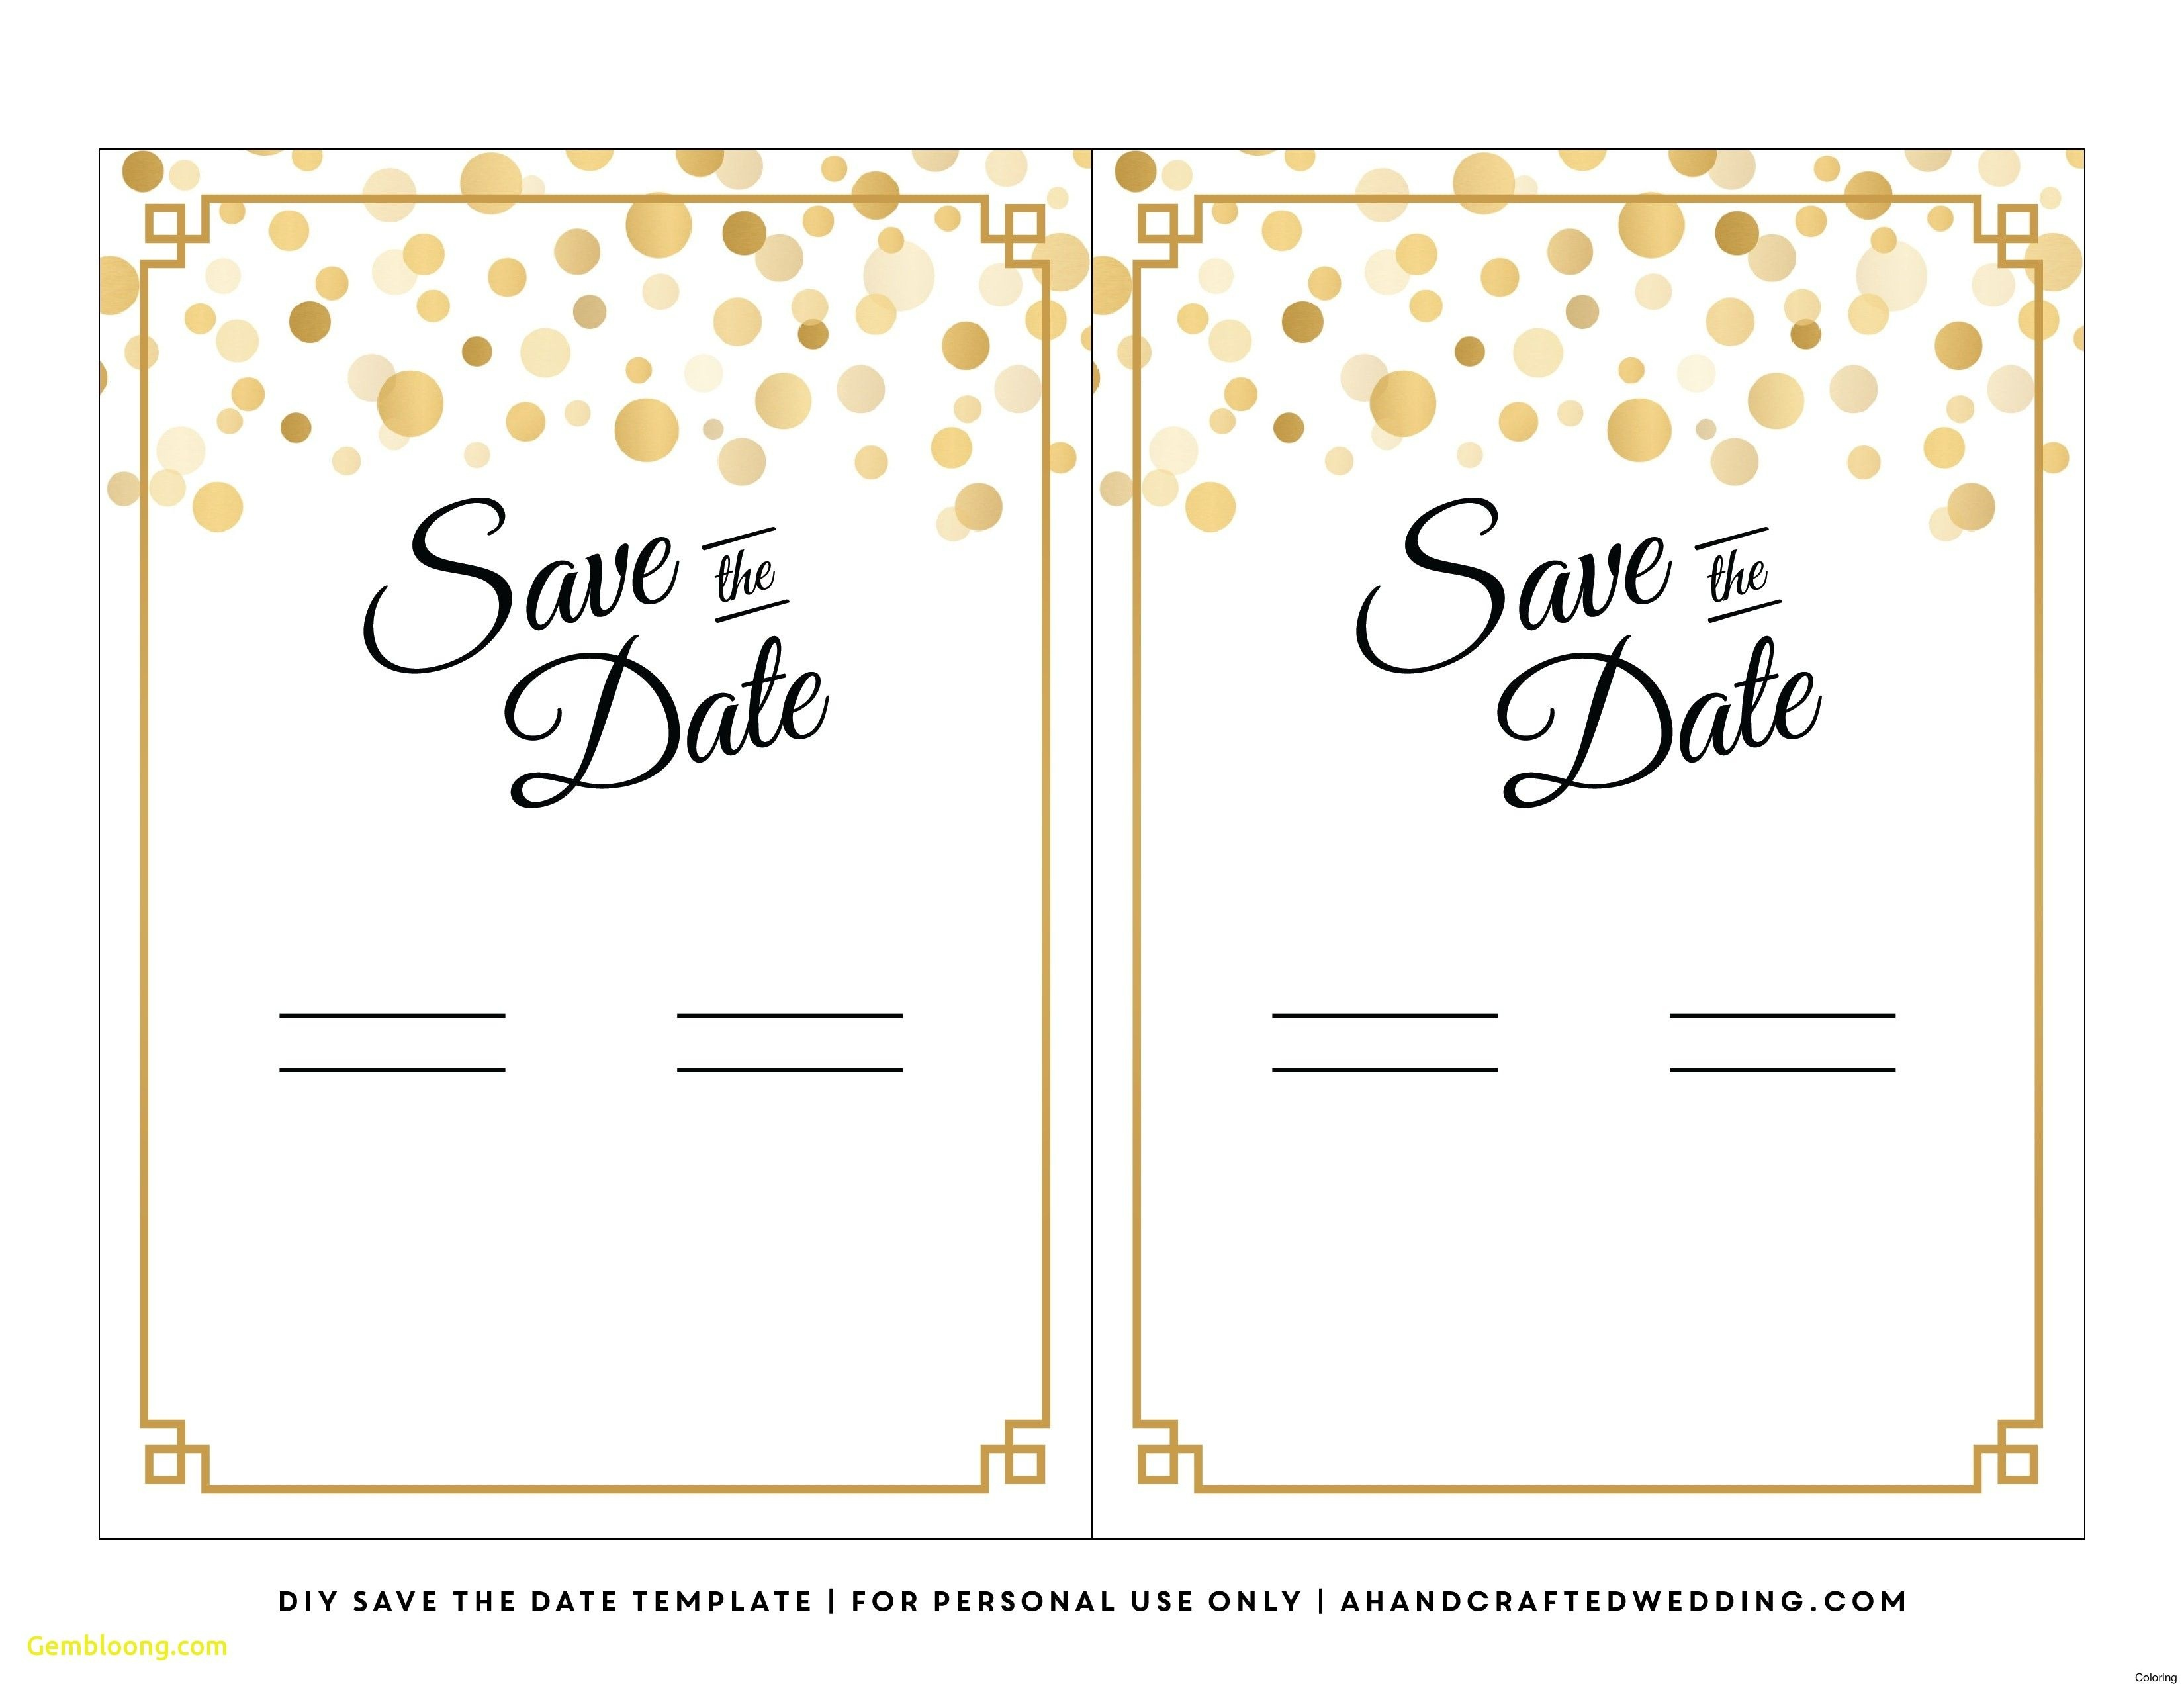 001 Template Ideas Save The Date Postcard Templates Fascinating Free - Free Printable Save The Date Templates